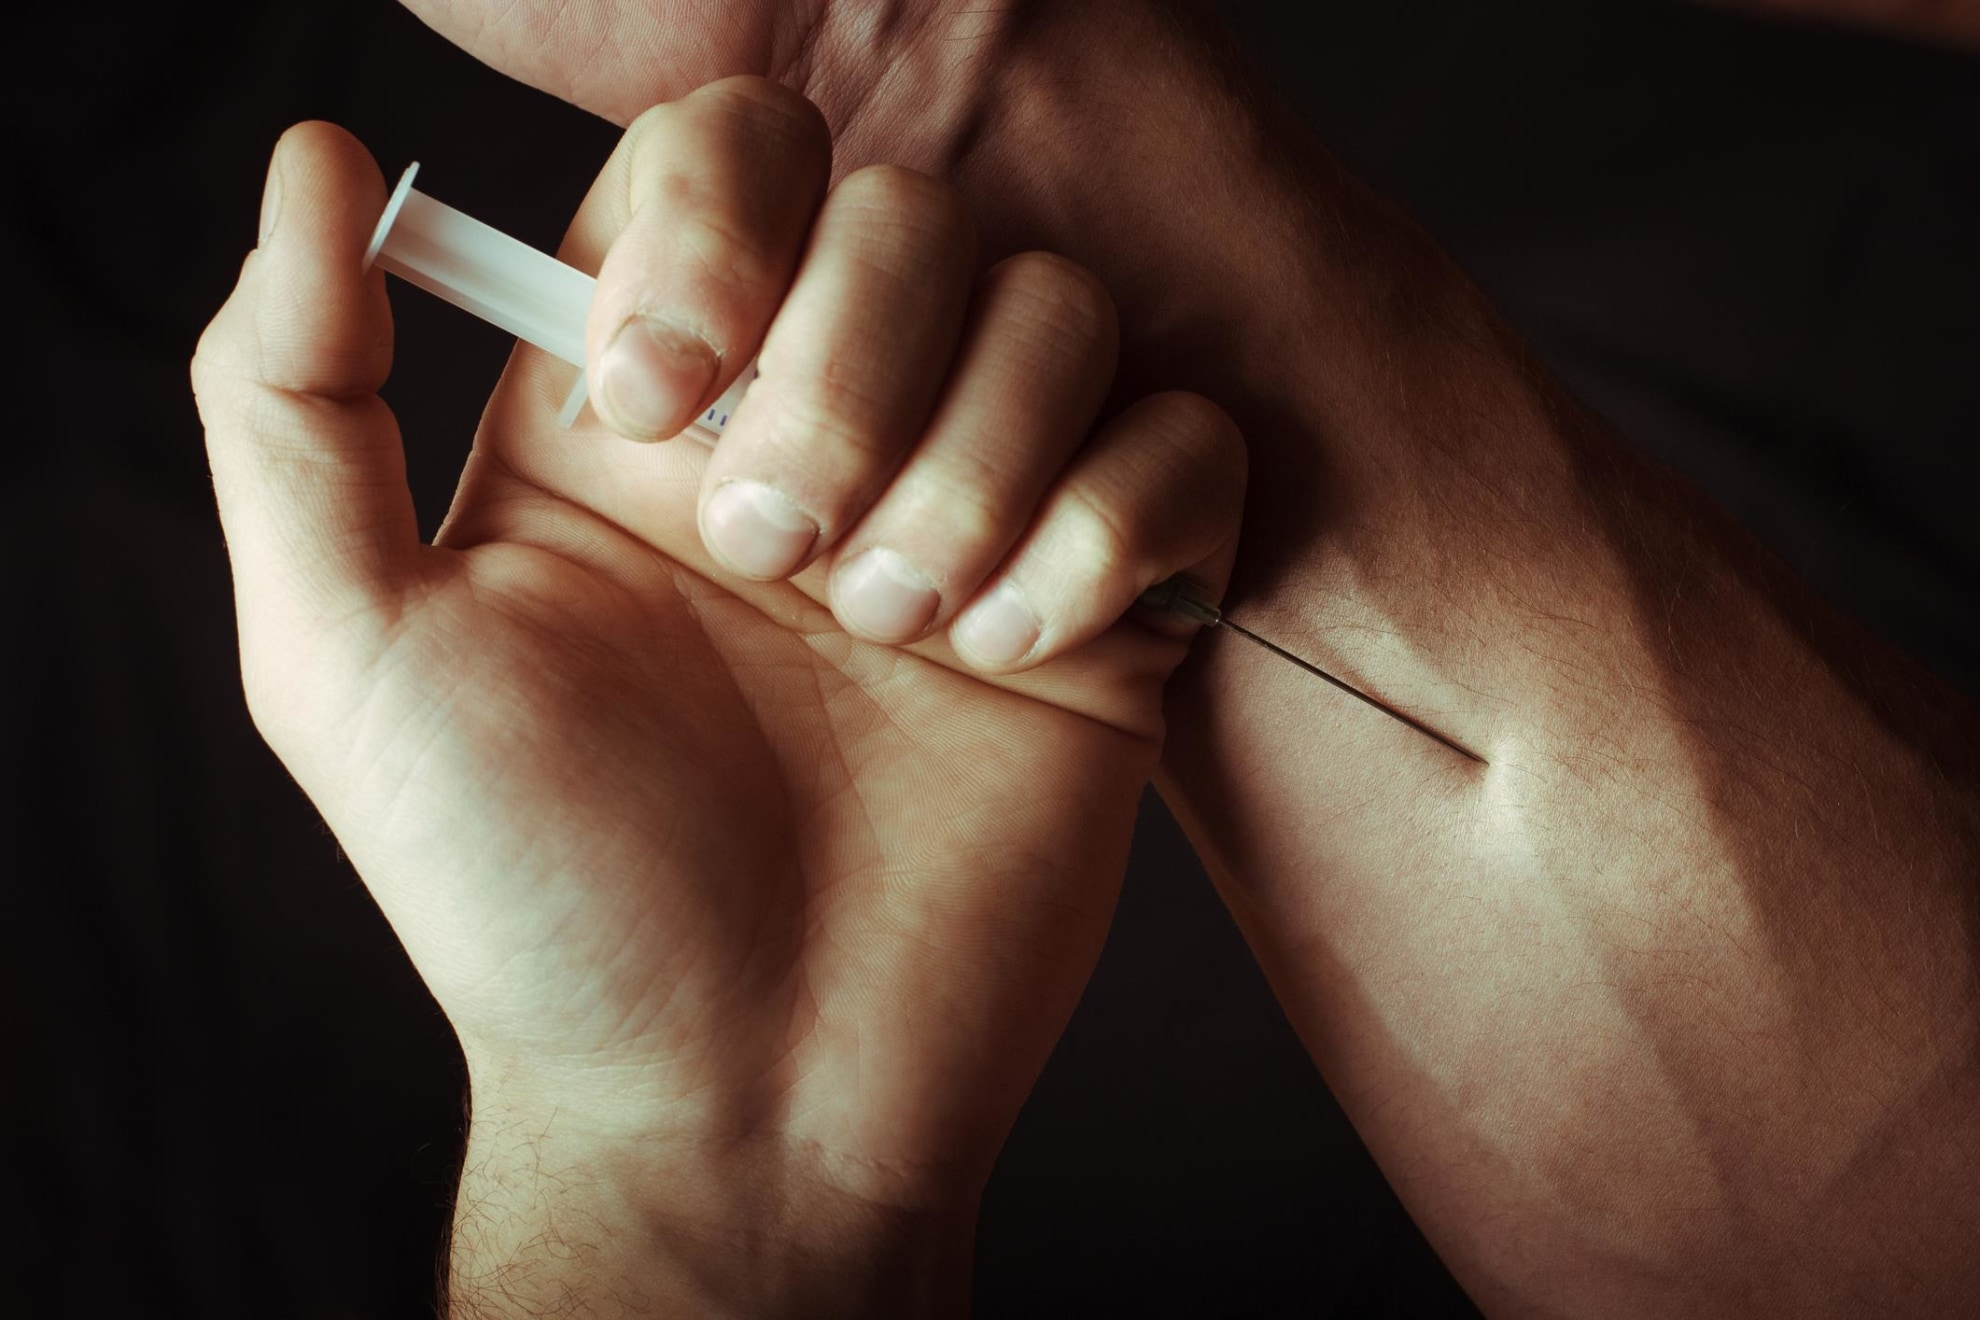 Hand injection